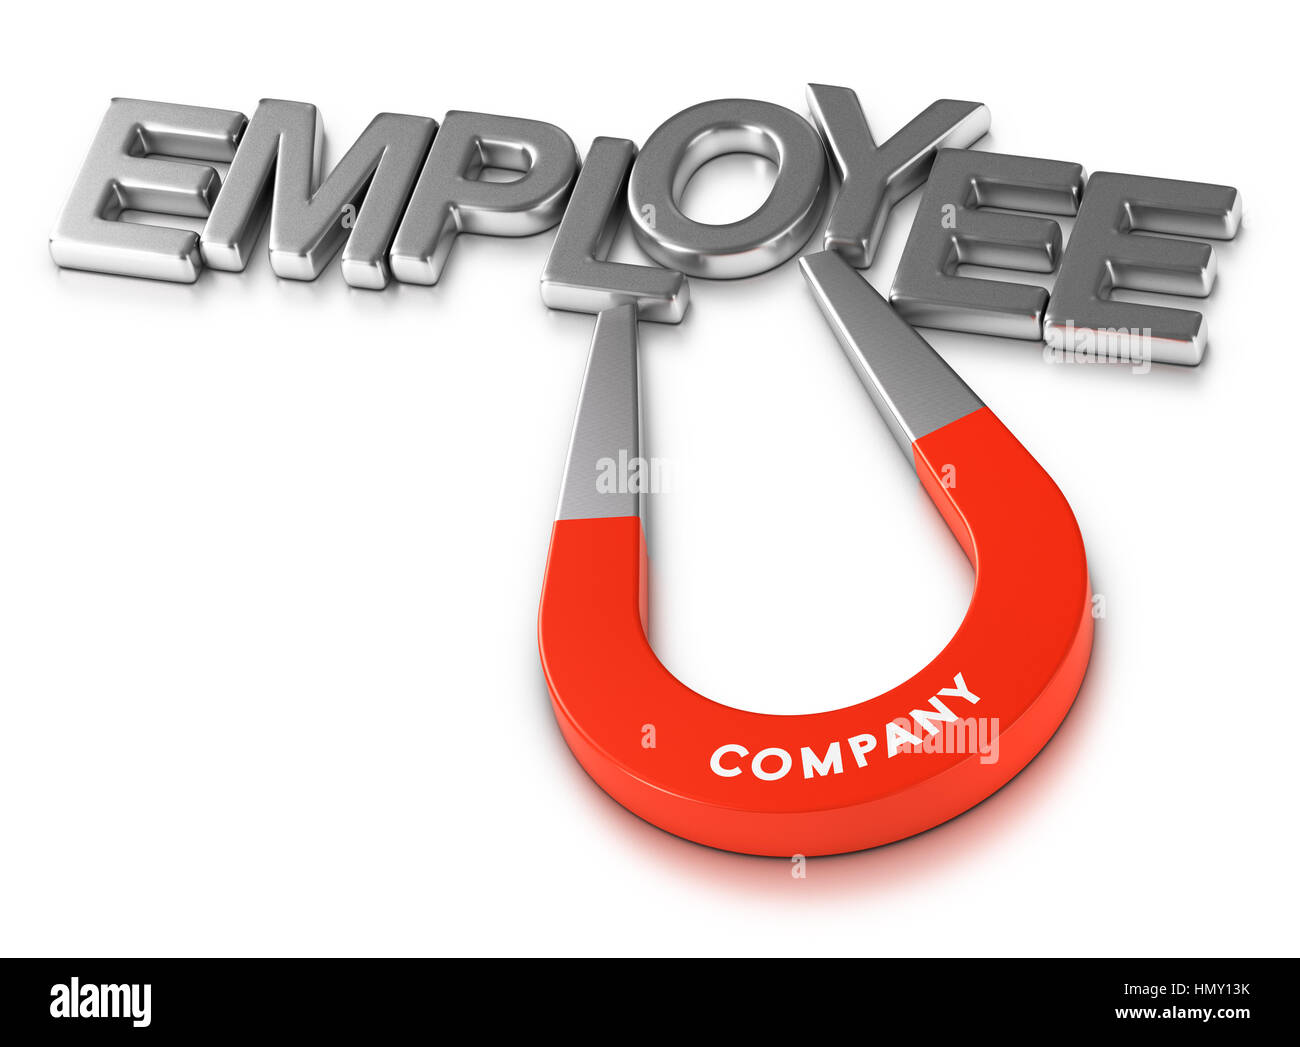 Horseshoe magnet attracting the word employee over white background, 3d illustration of staff retention program - Stock Image